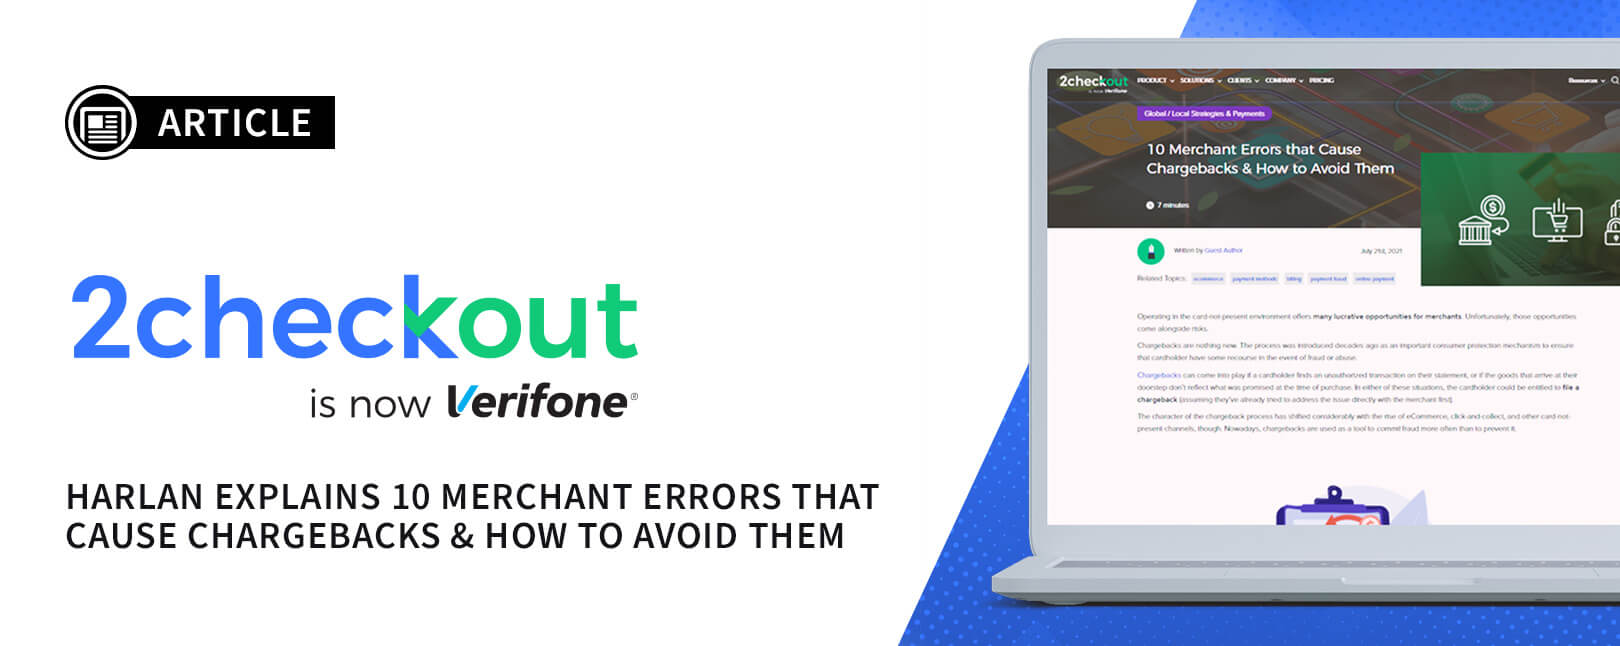 10 Merchant Errors that Cause Chargebacks & How to Avoid Them